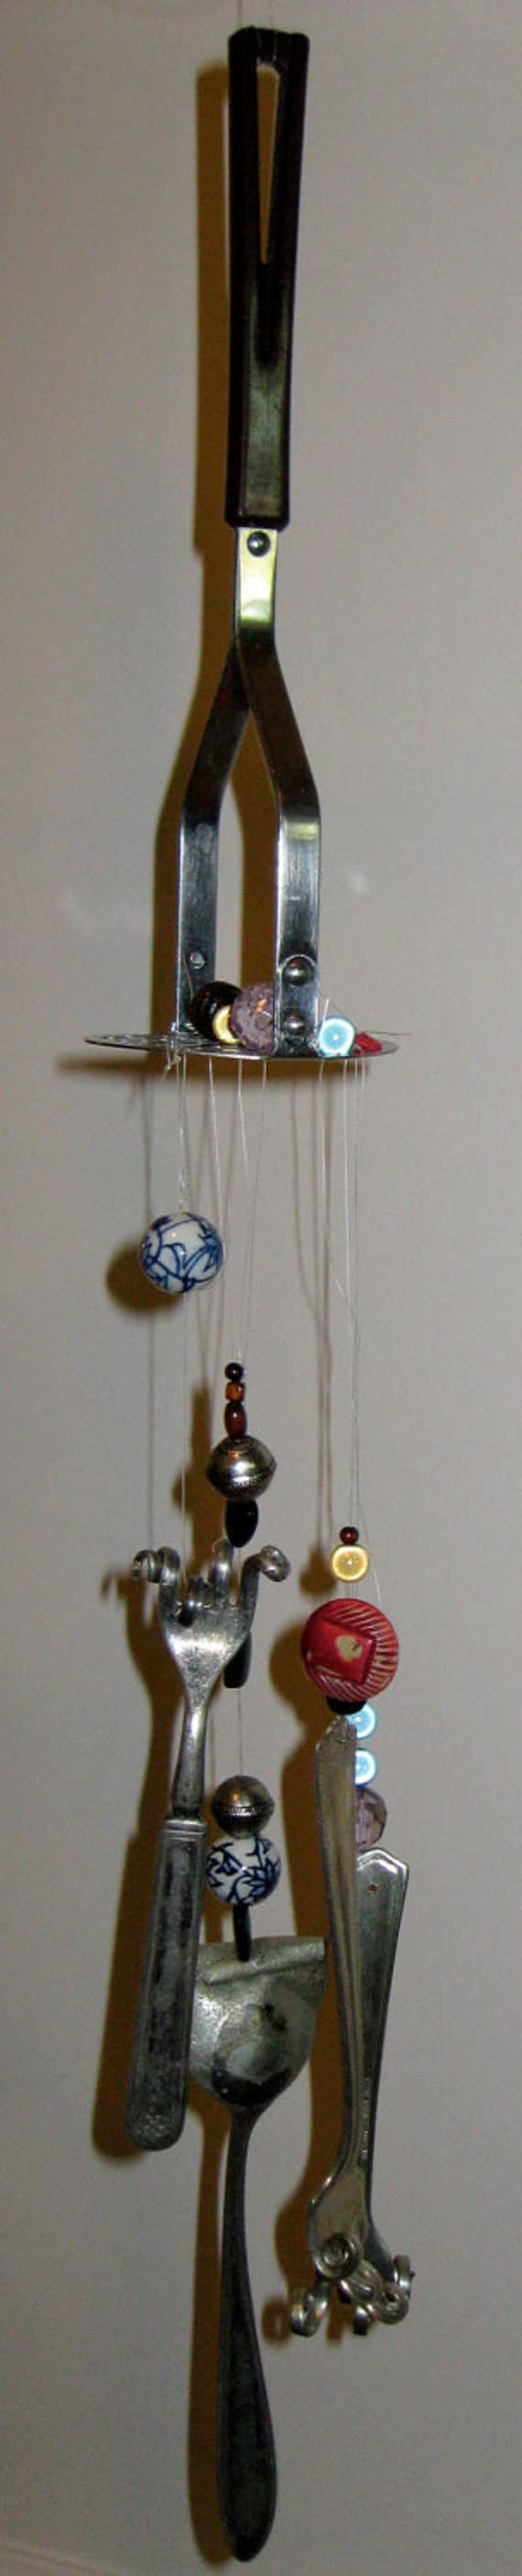 unique fork and spoon wind chime with masher kitchen decor